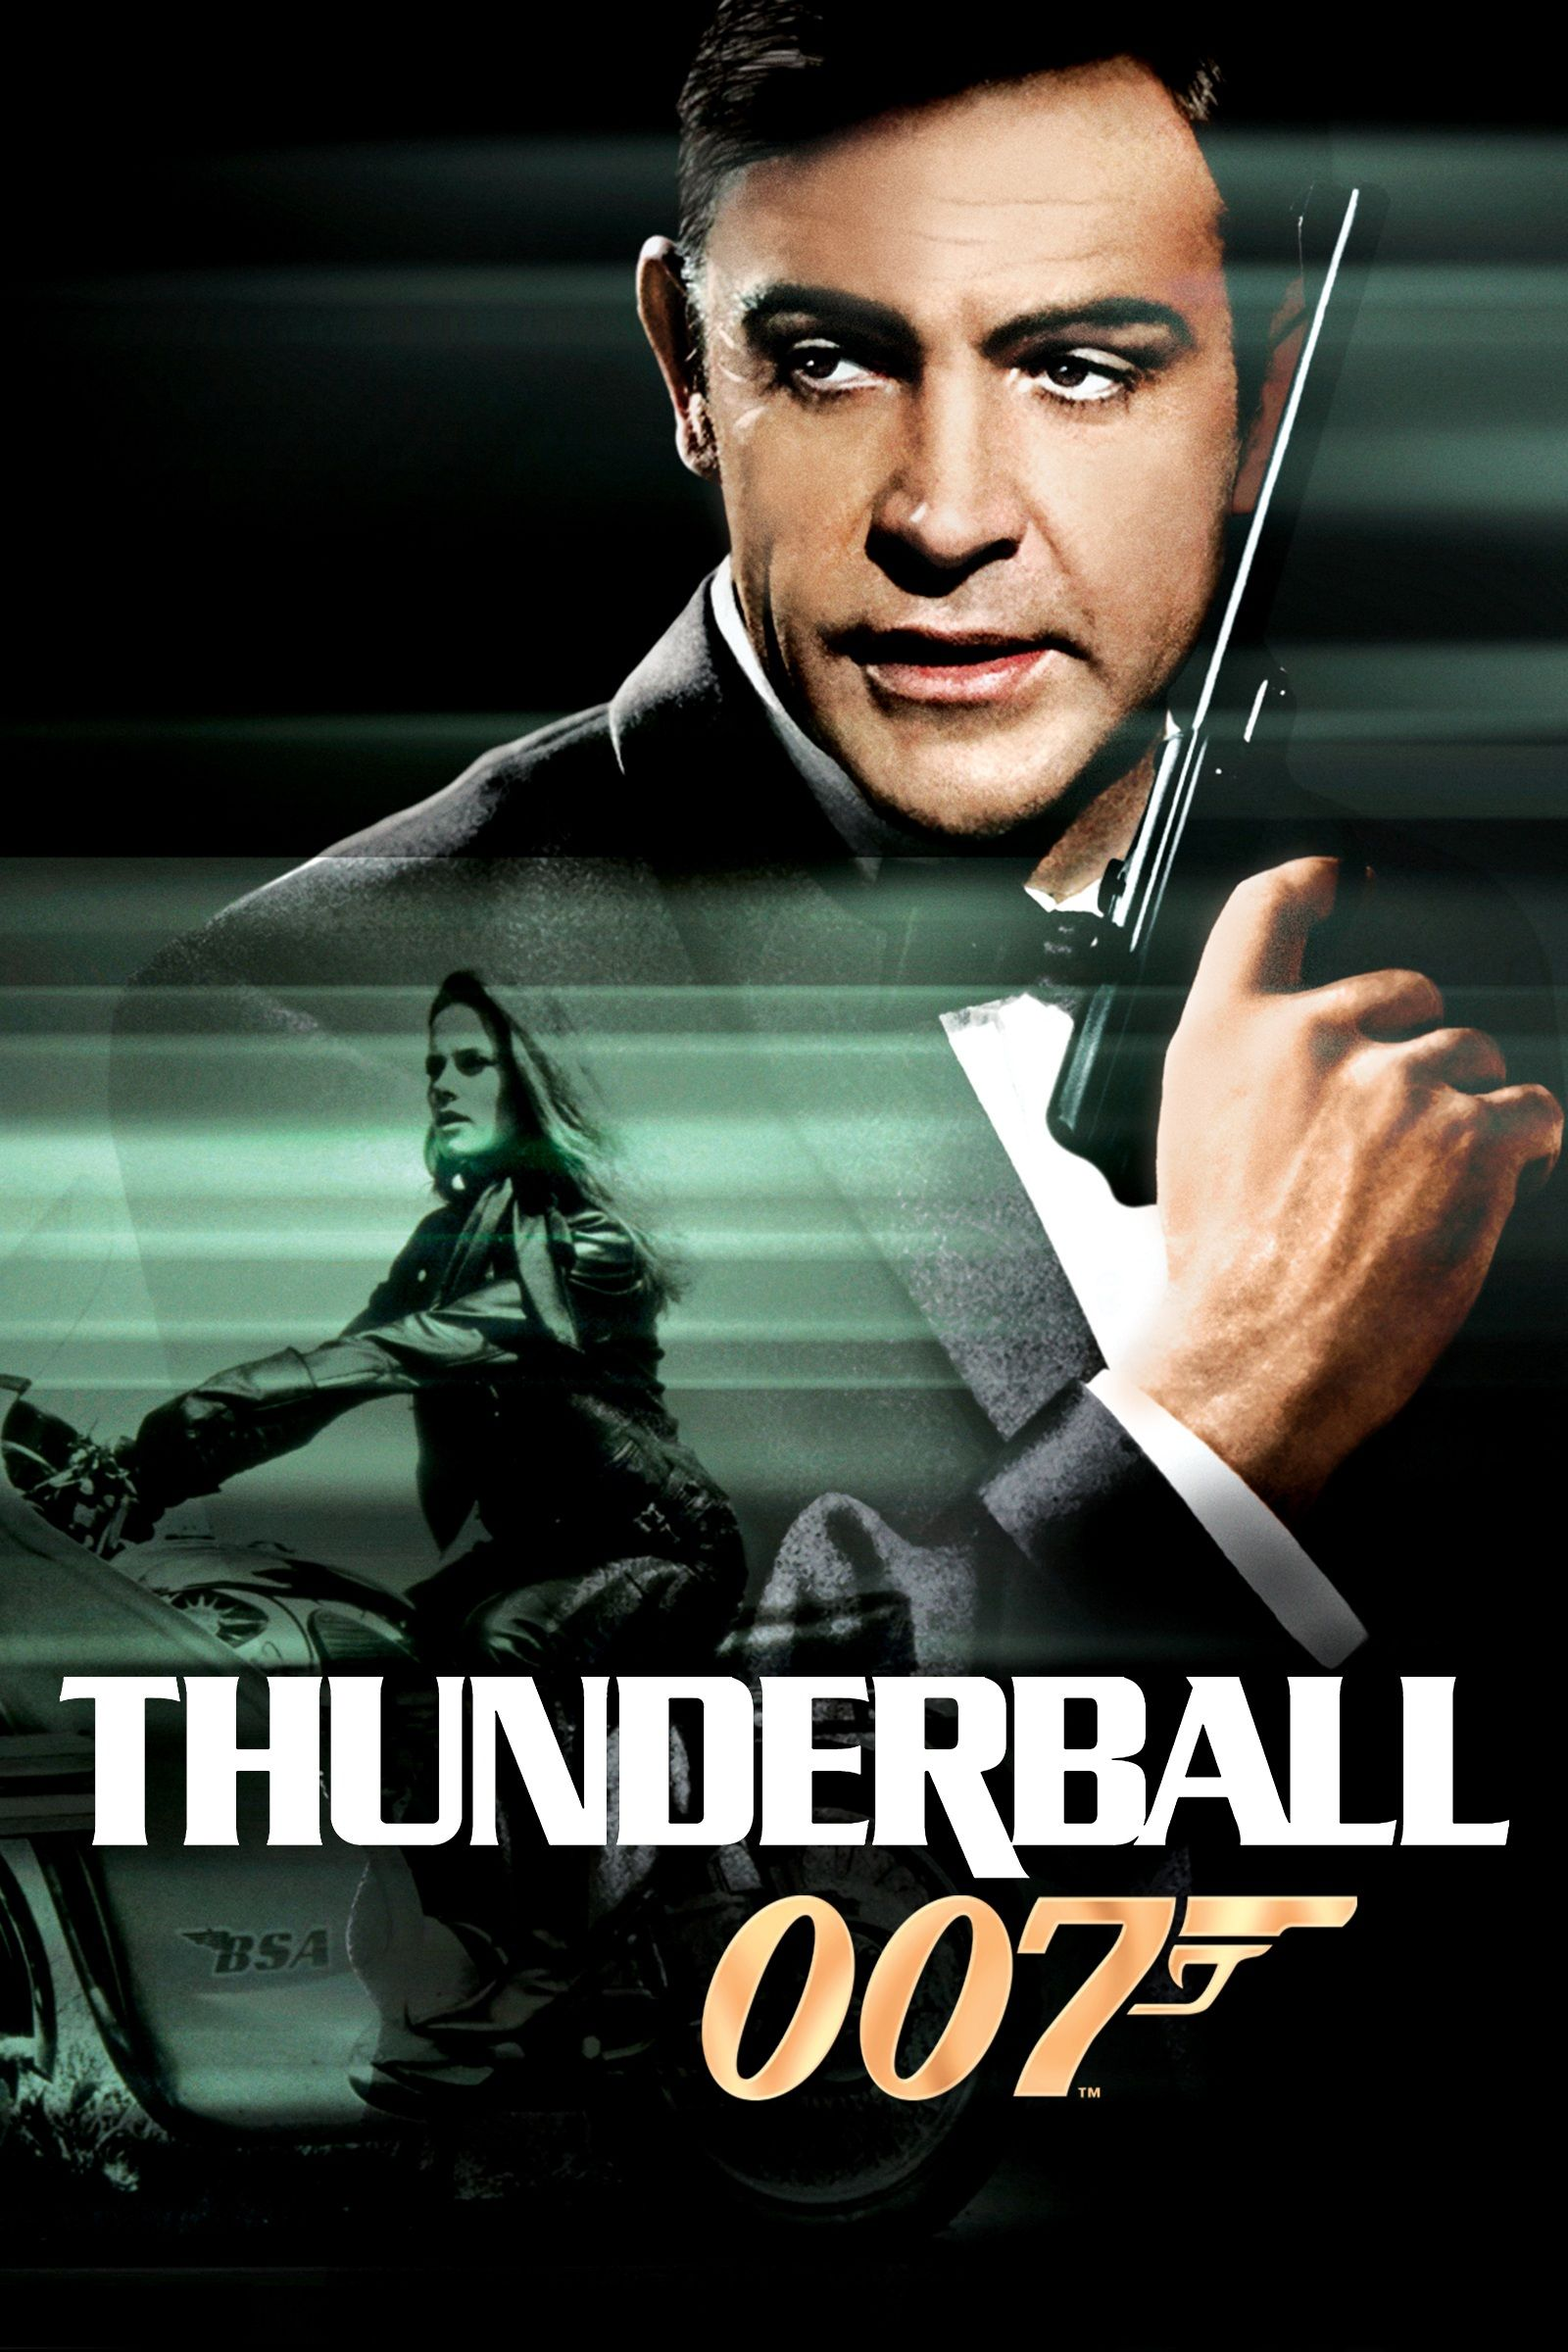 Thunderball Http Itunes Apple Com Us Movie Thunderball